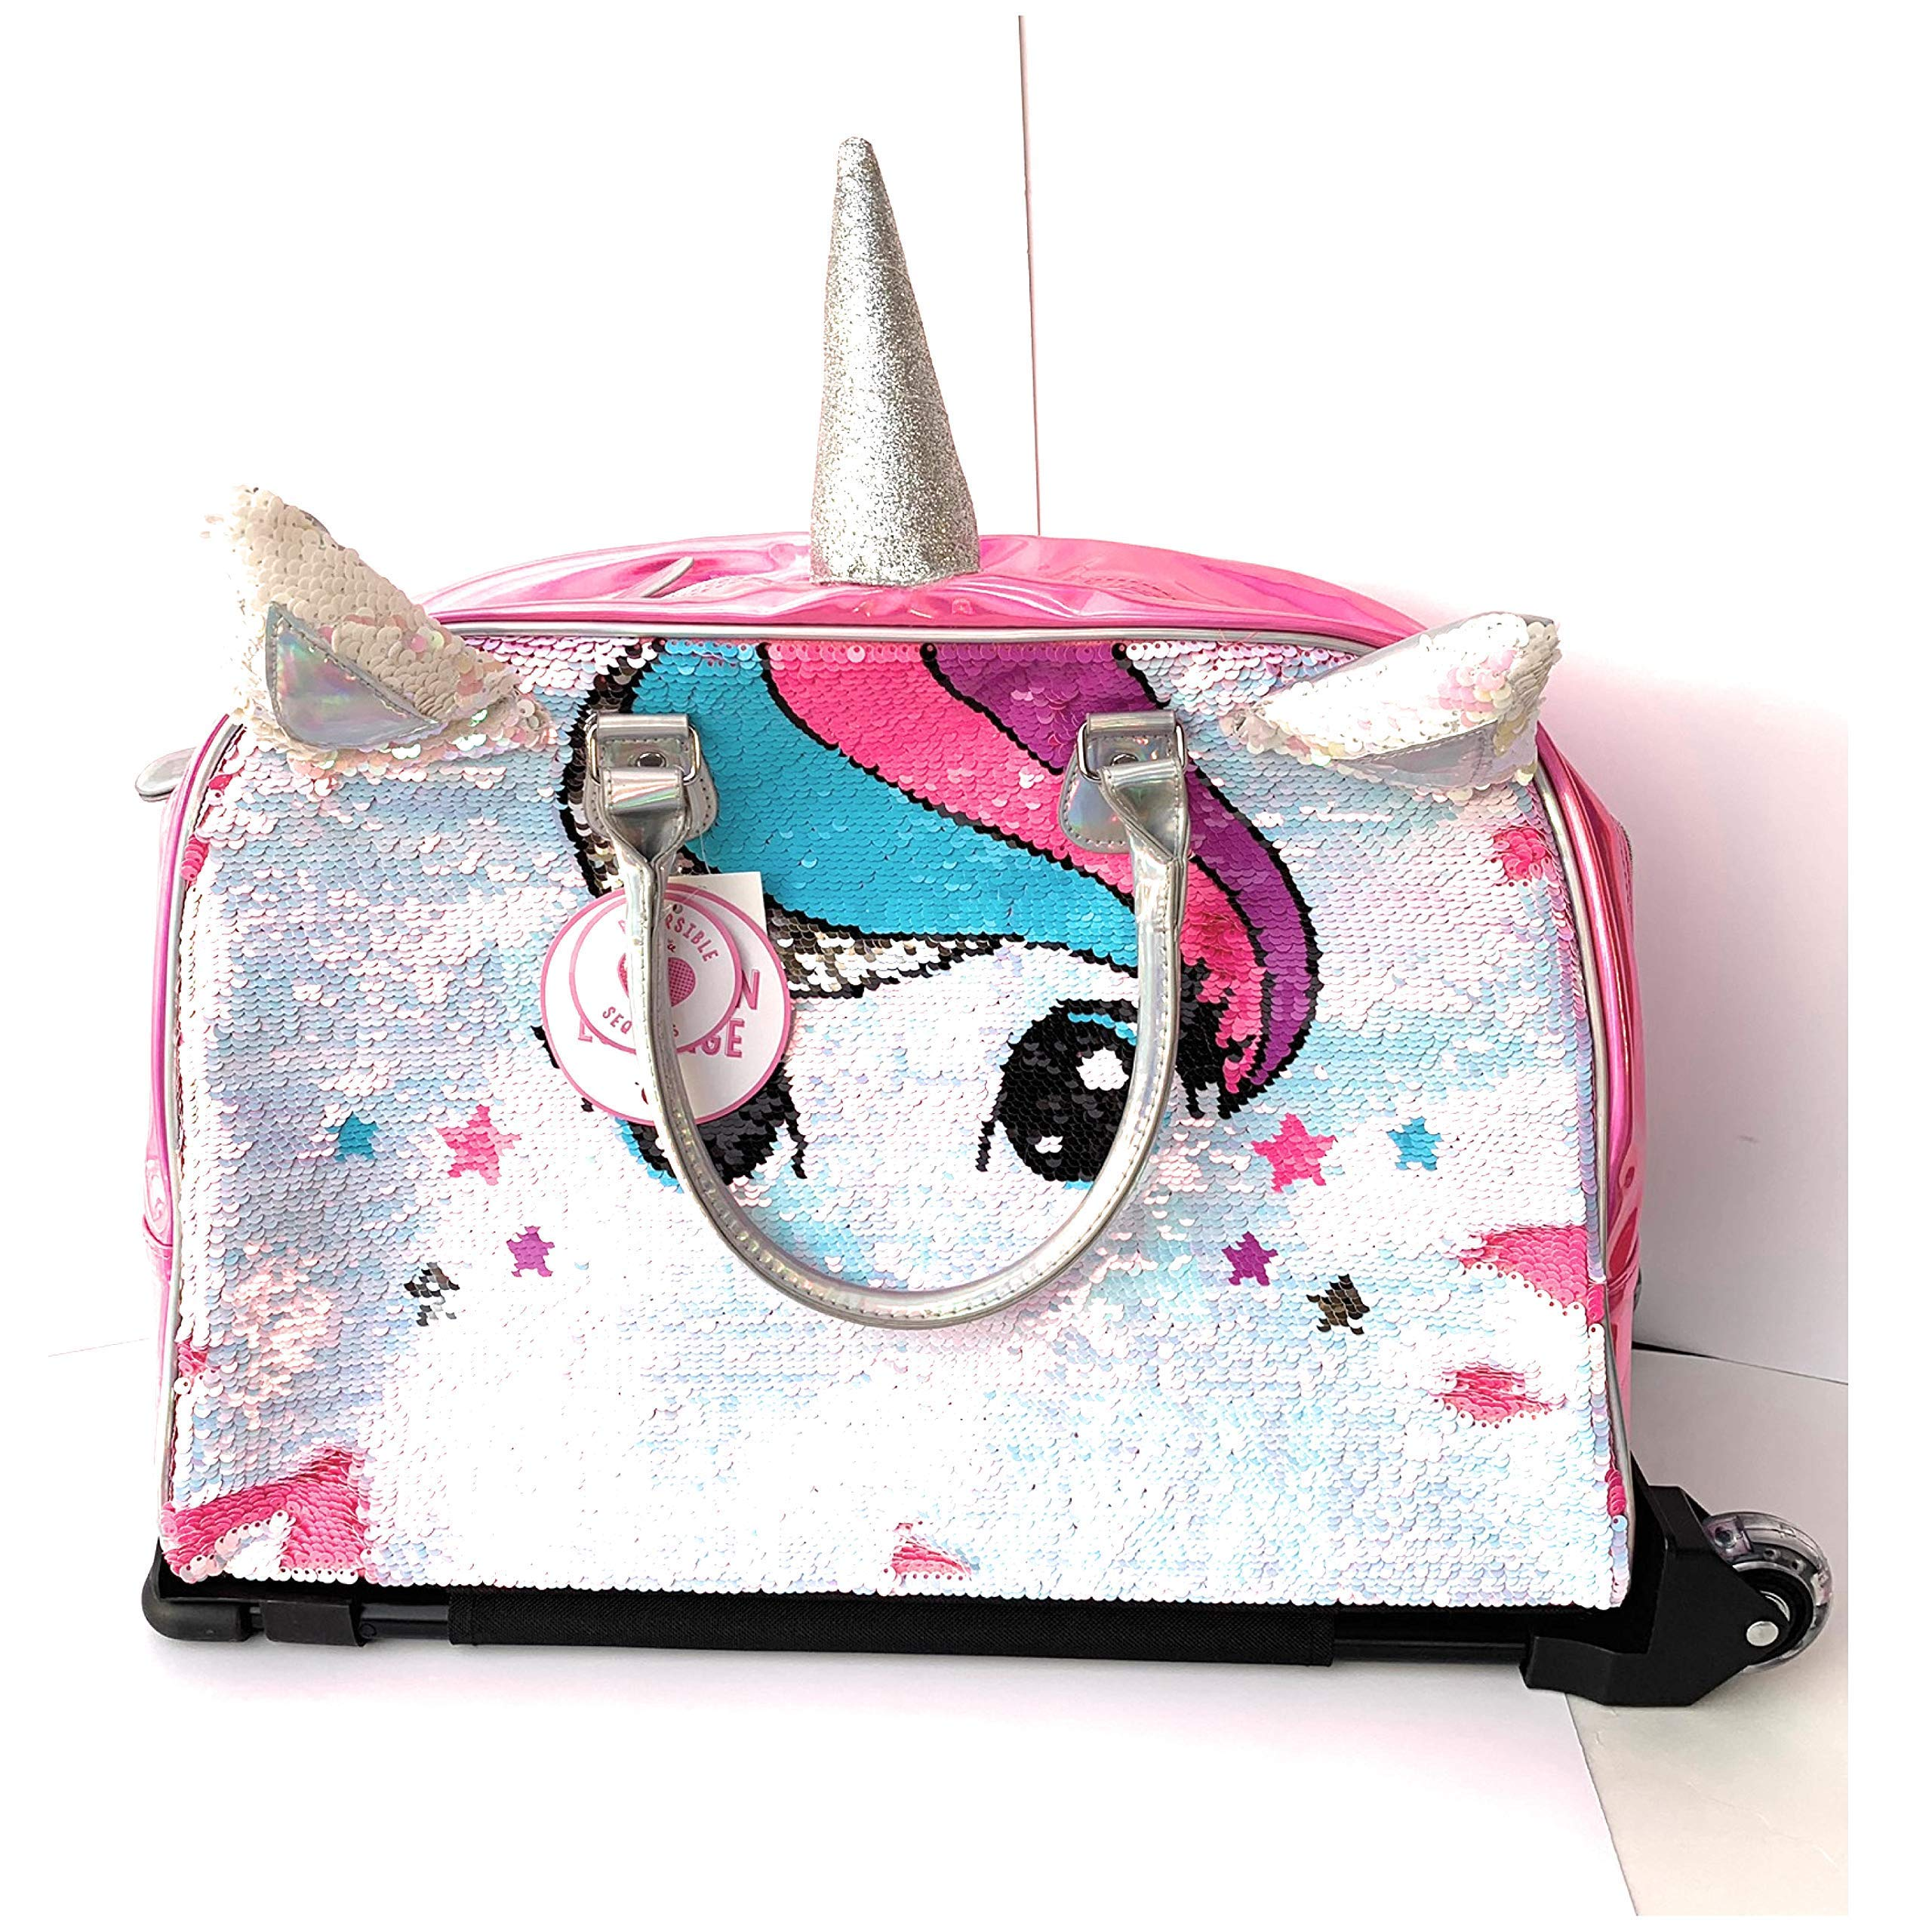 Justice Girls Exclusive Pink Reversible Seqiun Unicorn Carry On Luggage Suitcase Travel Bag by Justice (Image #2)